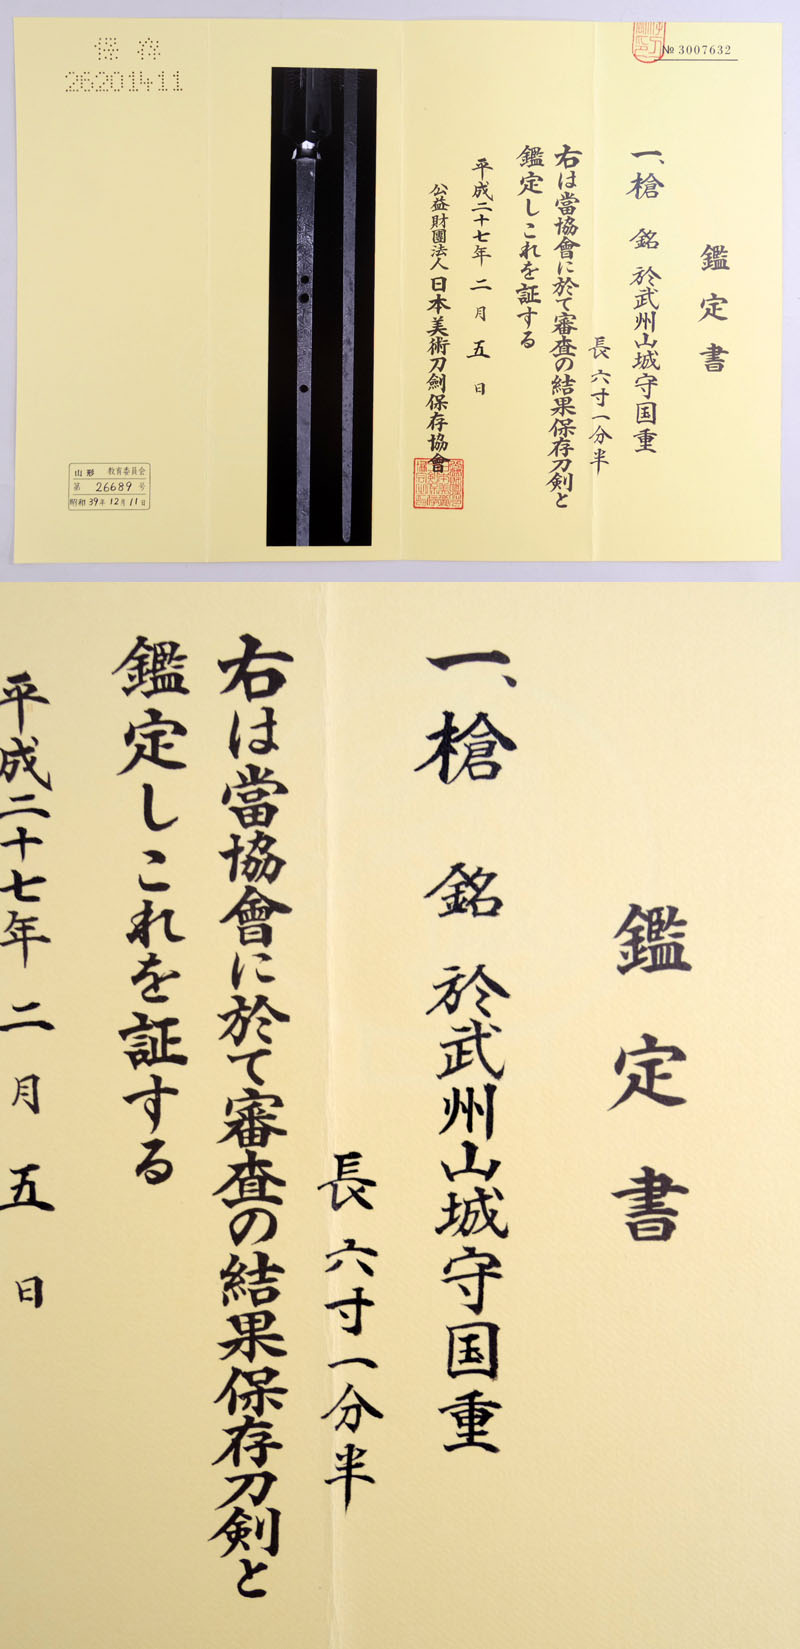 於武州山城守国重 Picture of Certificate